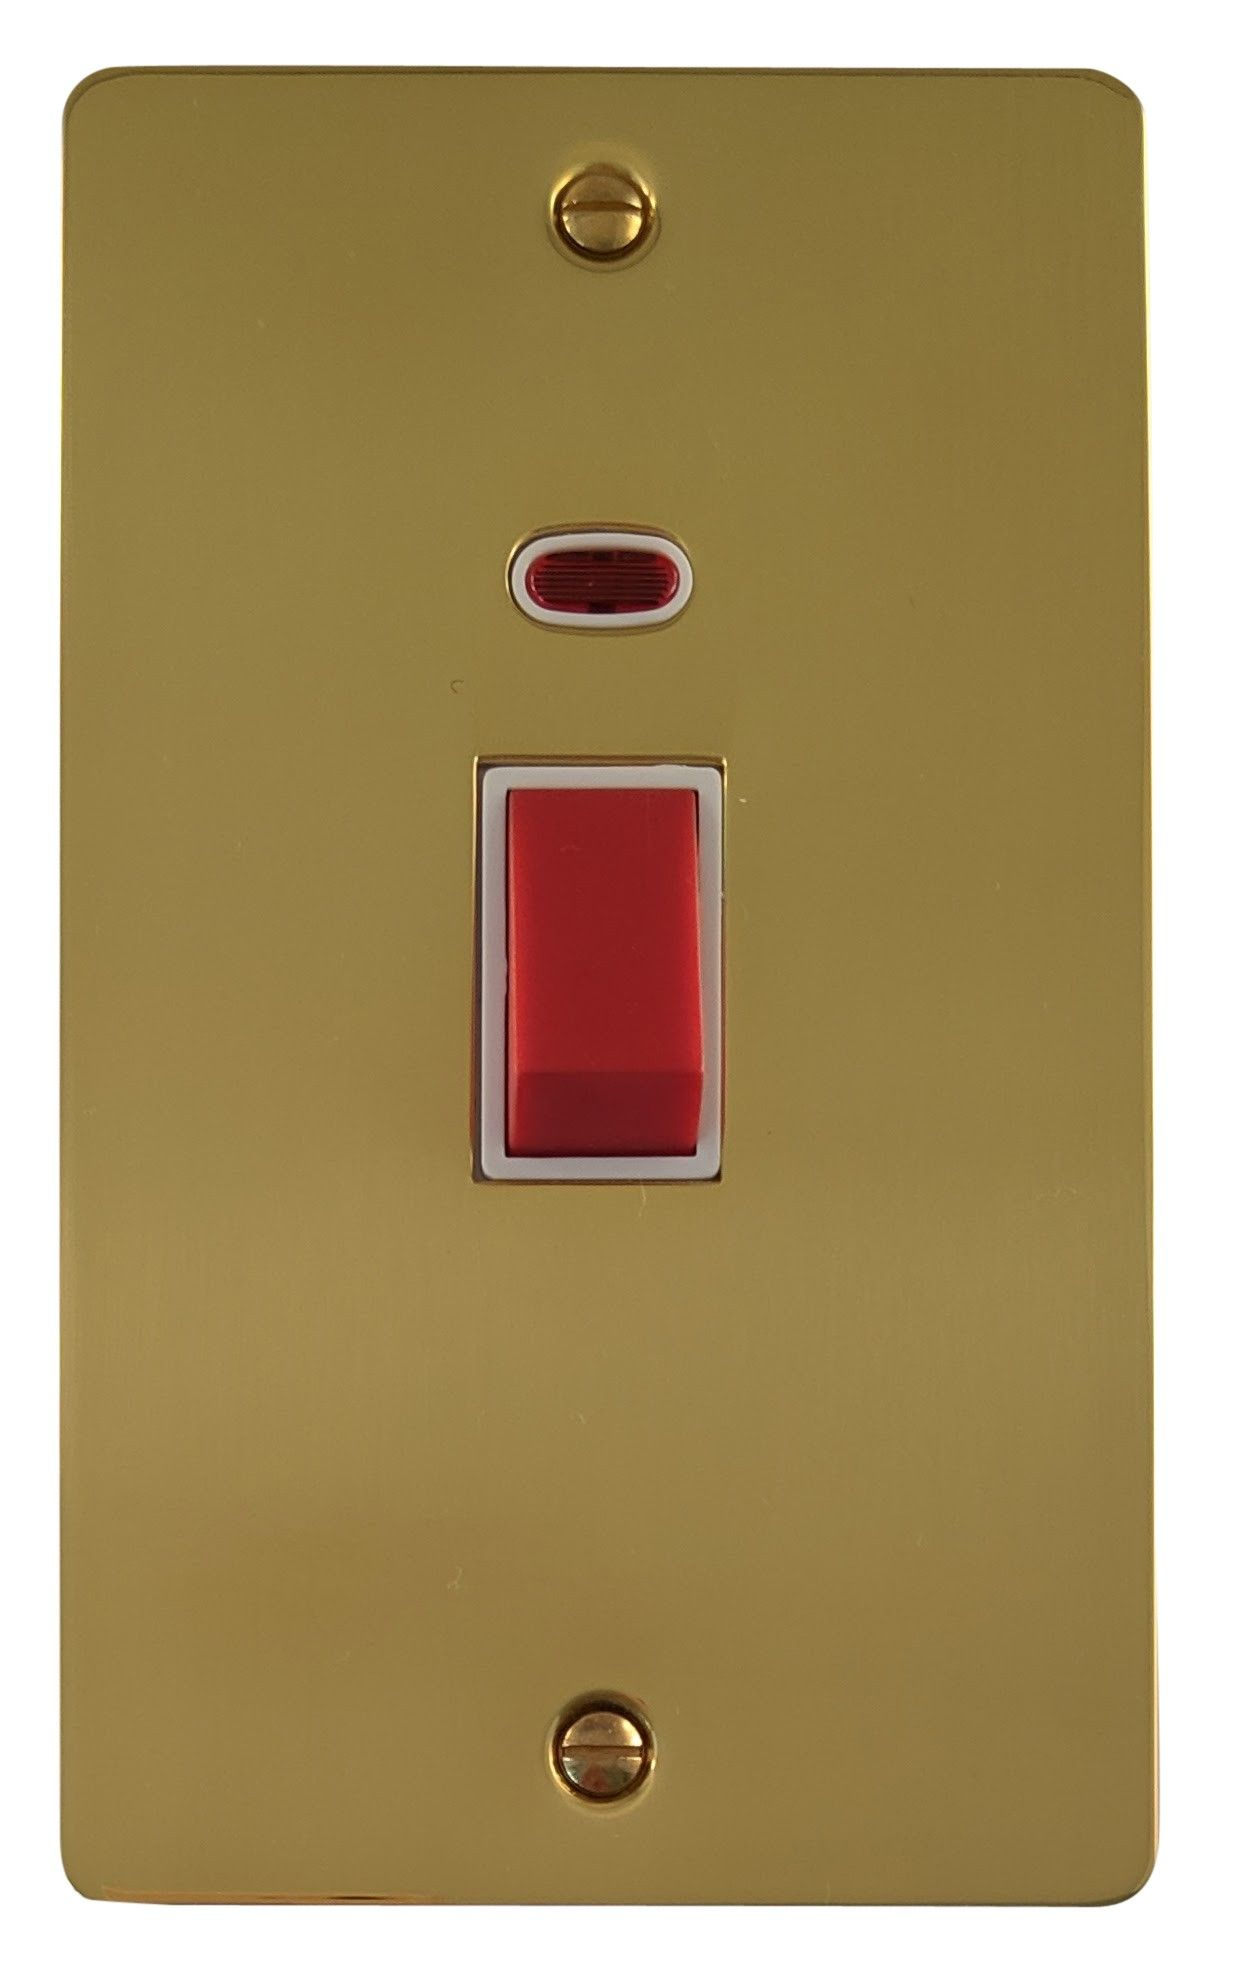 G&H FB28W Flat Plate Polished Brass 45 Amp DP Cooker Switch & Neon Vertical Plate